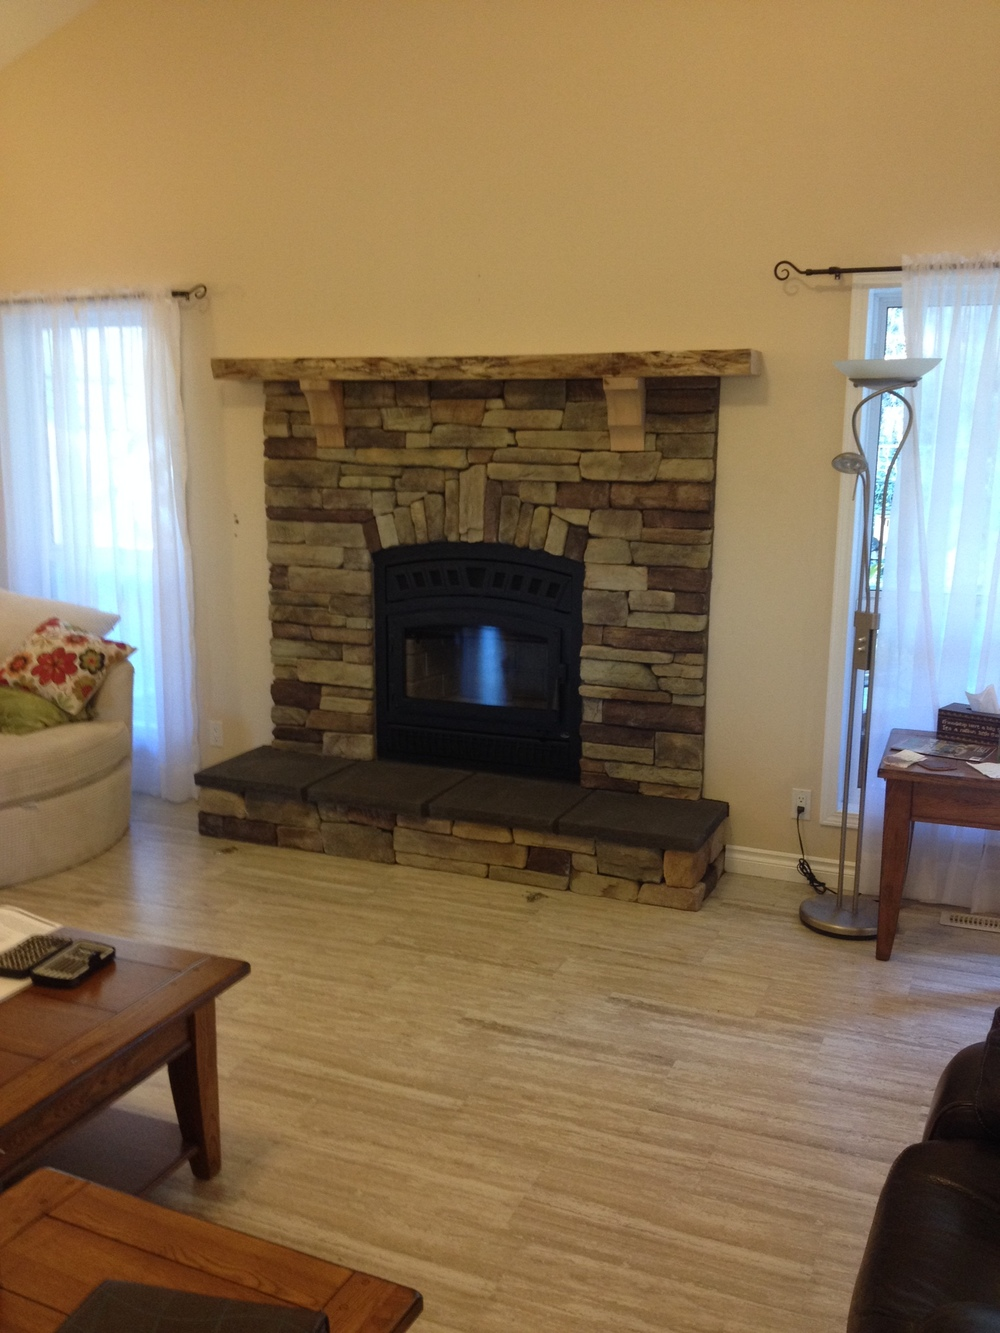 Manzanita Cliffstone Fireplace.jpeg